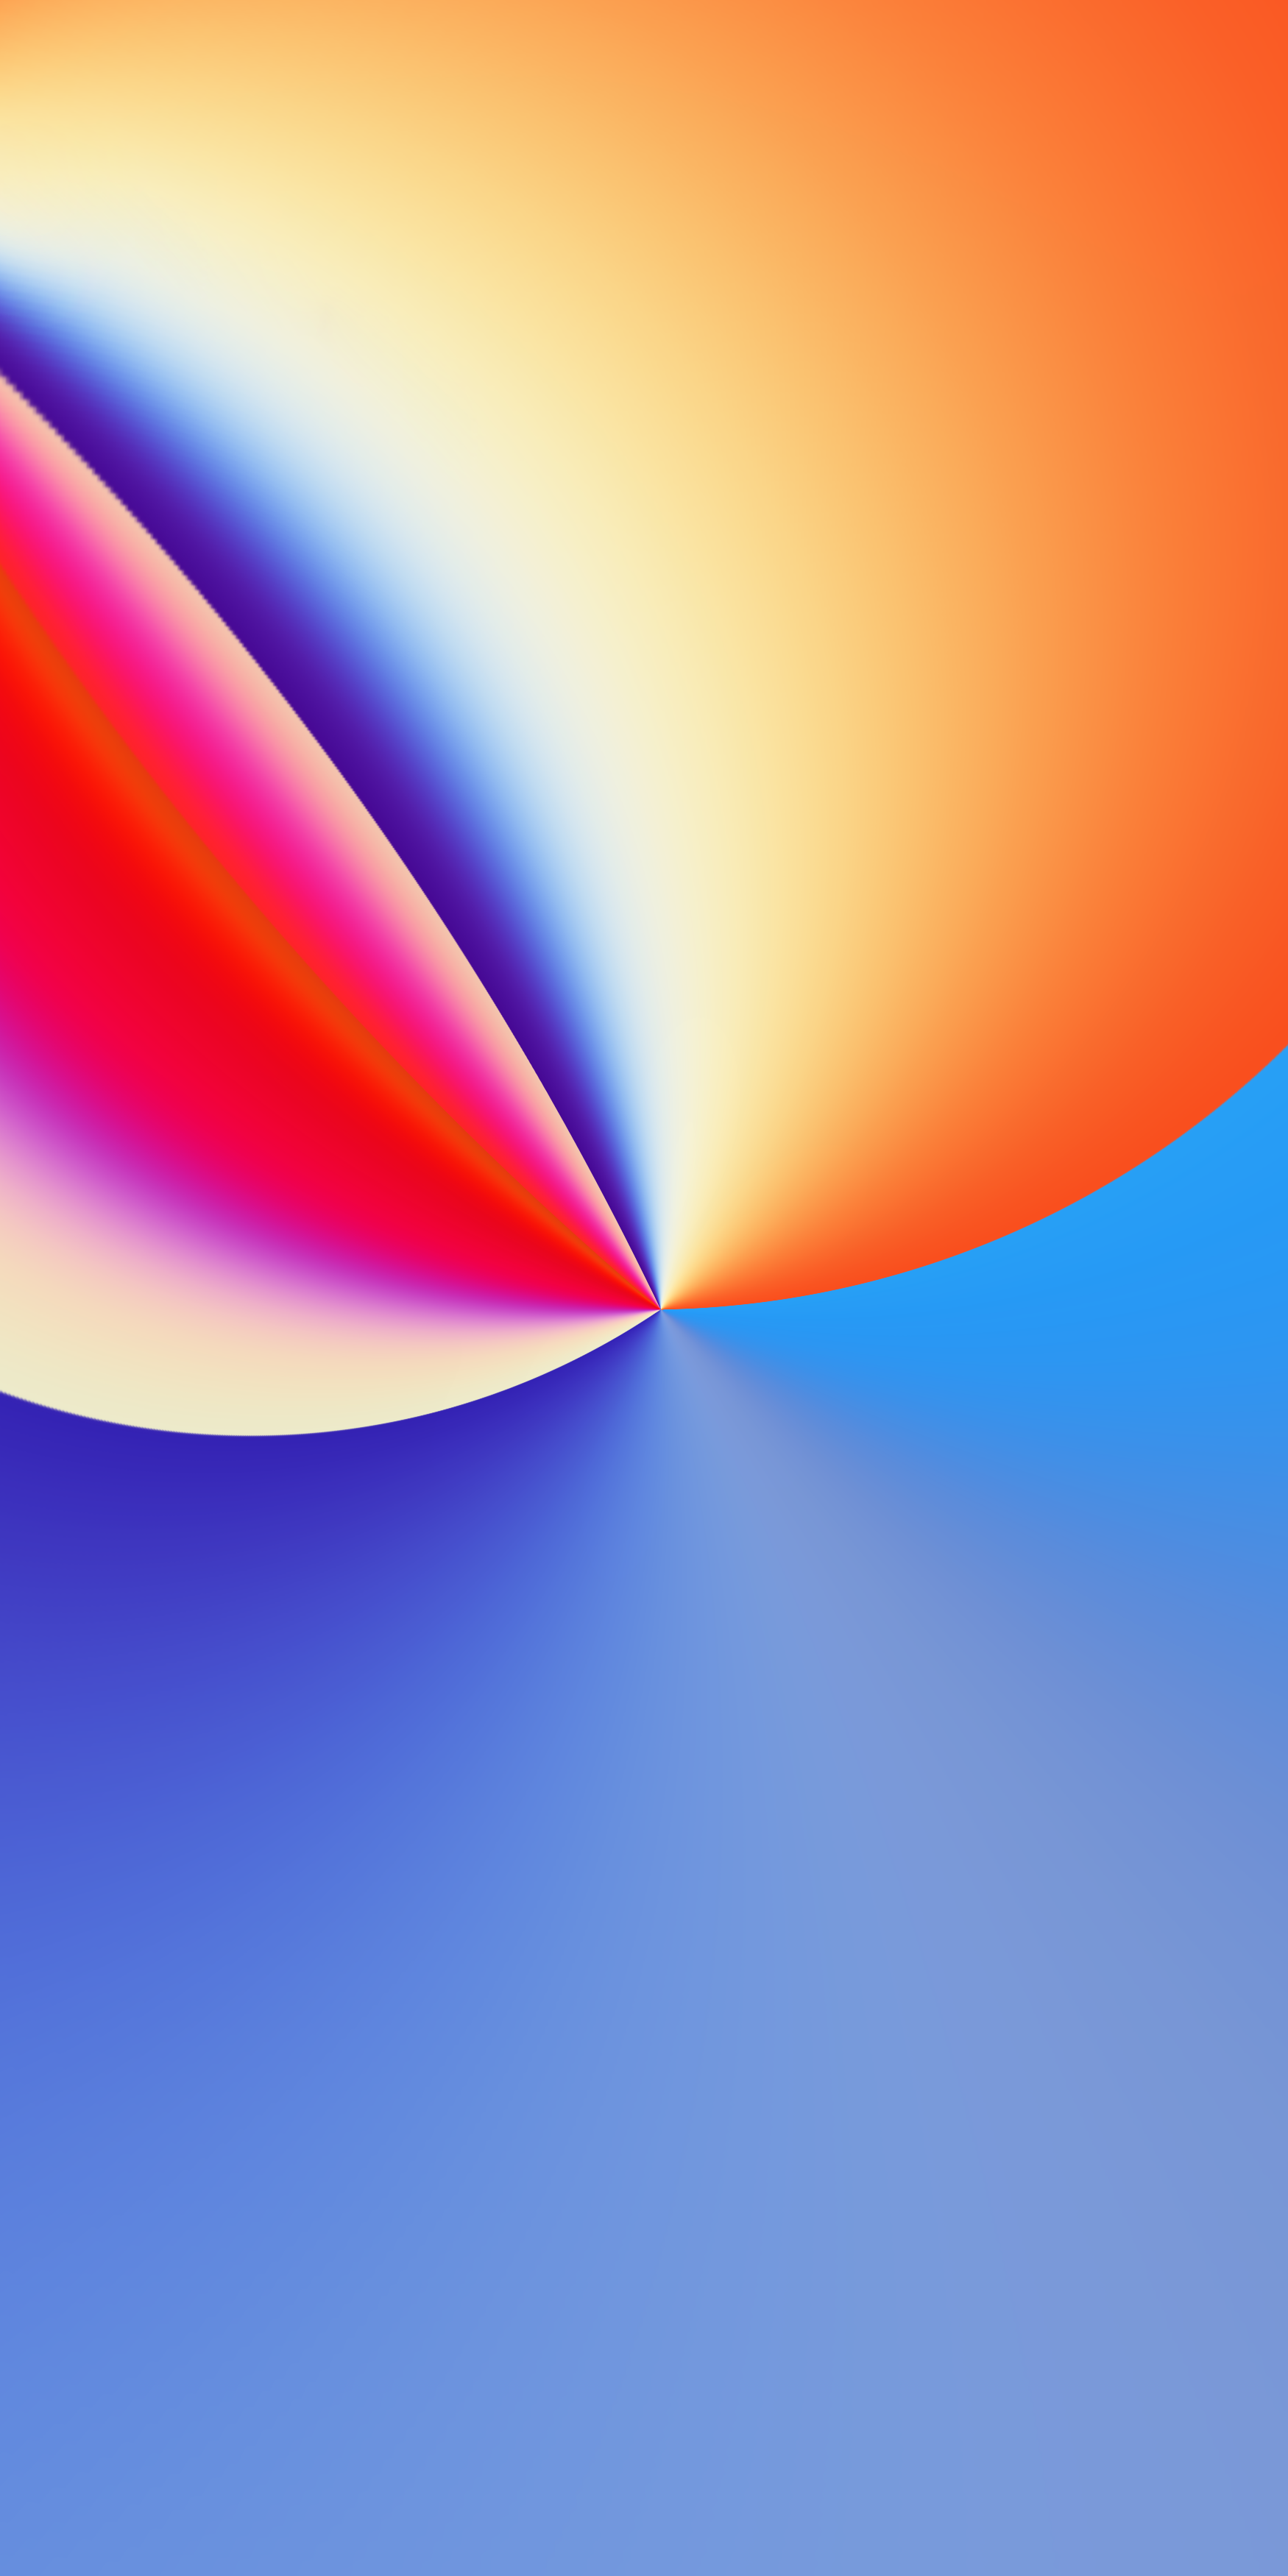 Best Wallpaper for iPhone 11 Pro Max (YTECHB.com) in 2020 ...